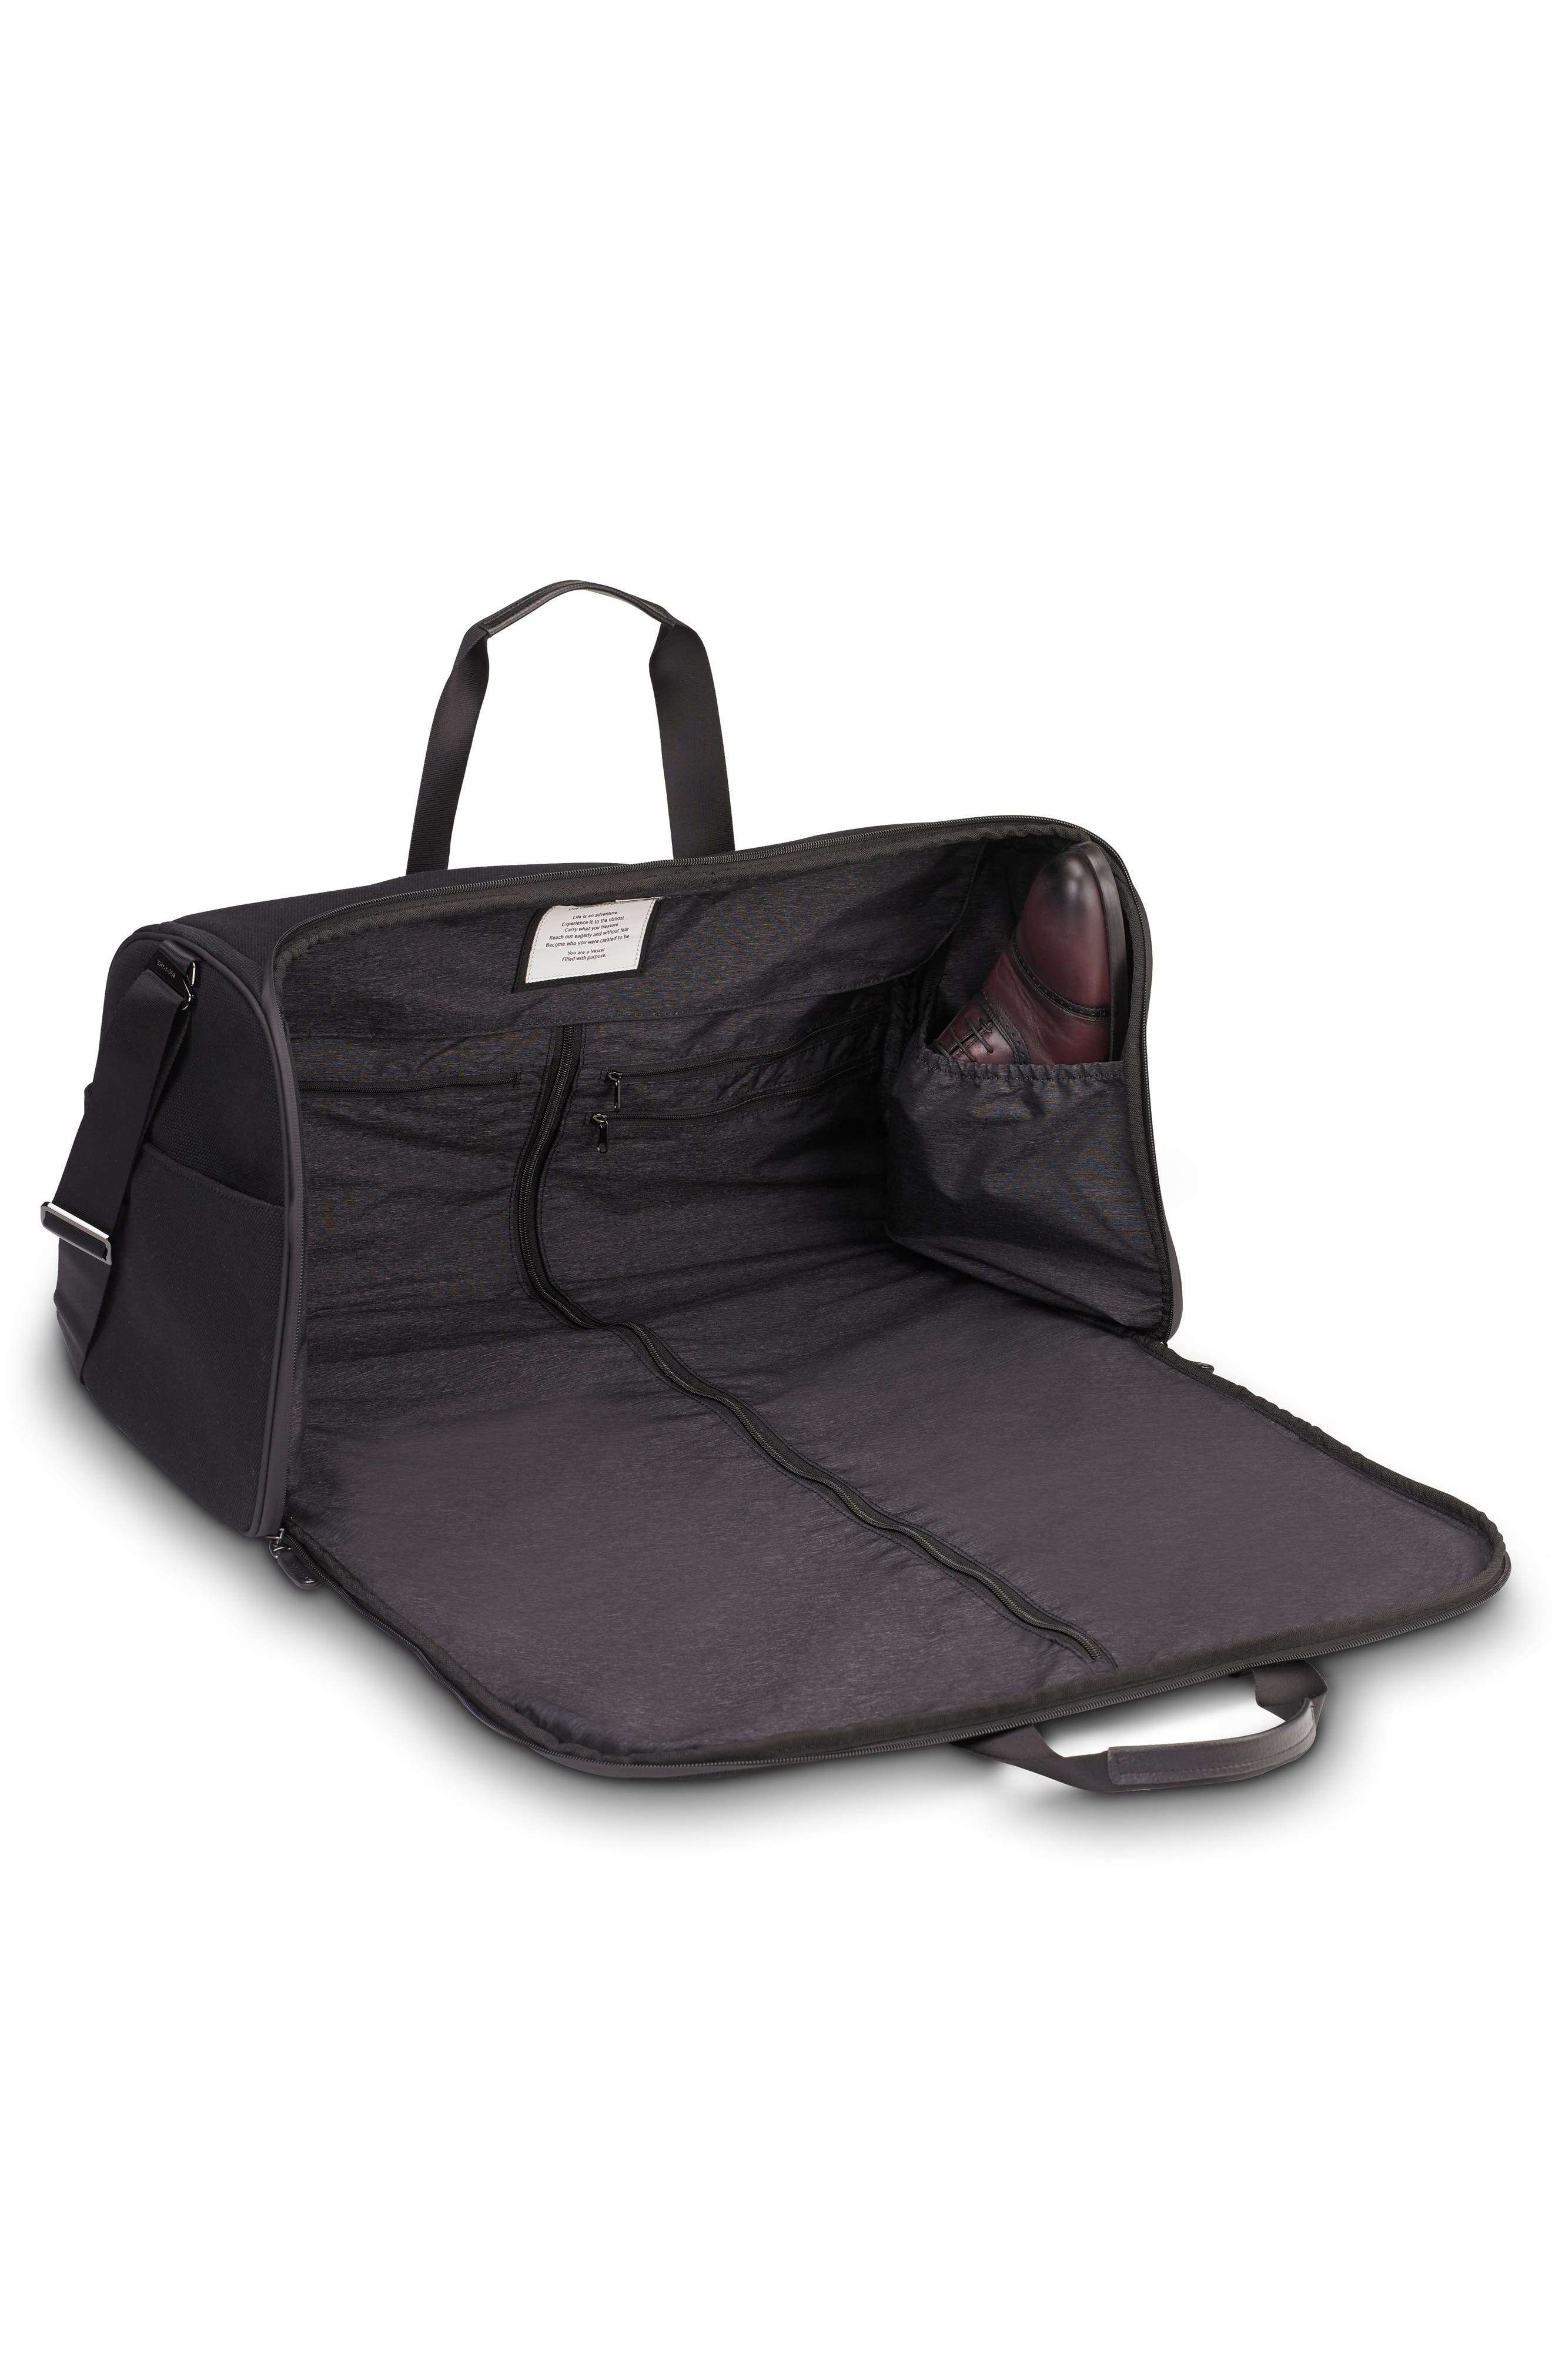 Canvas Garment Duffel Bag,                             Alternate thumbnail 2, color,